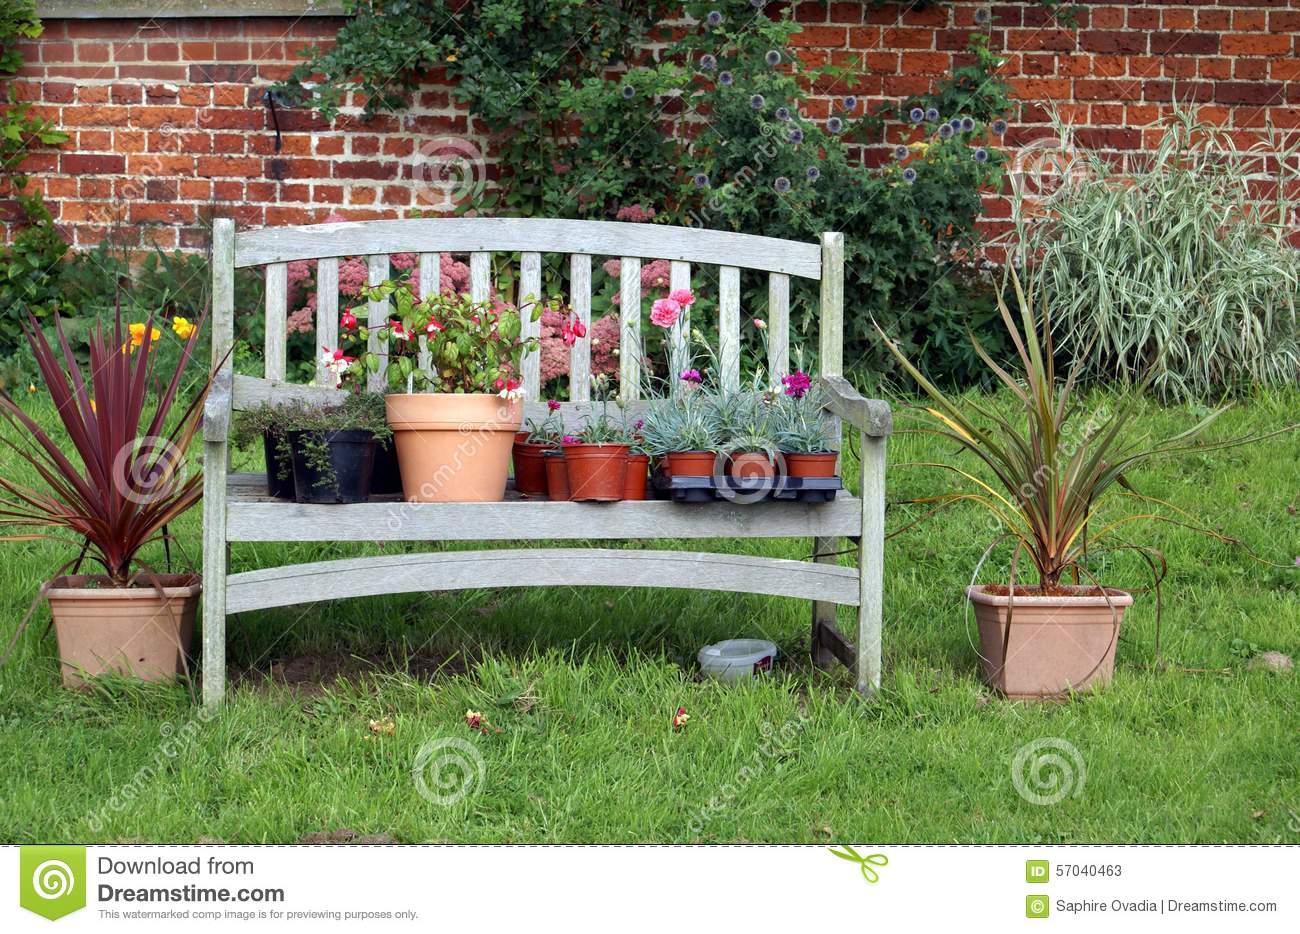 plantes et fleurs dans des pots sur un si ge ou un banc de jardin en bois photo stock image. Black Bedroom Furniture Sets. Home Design Ideas